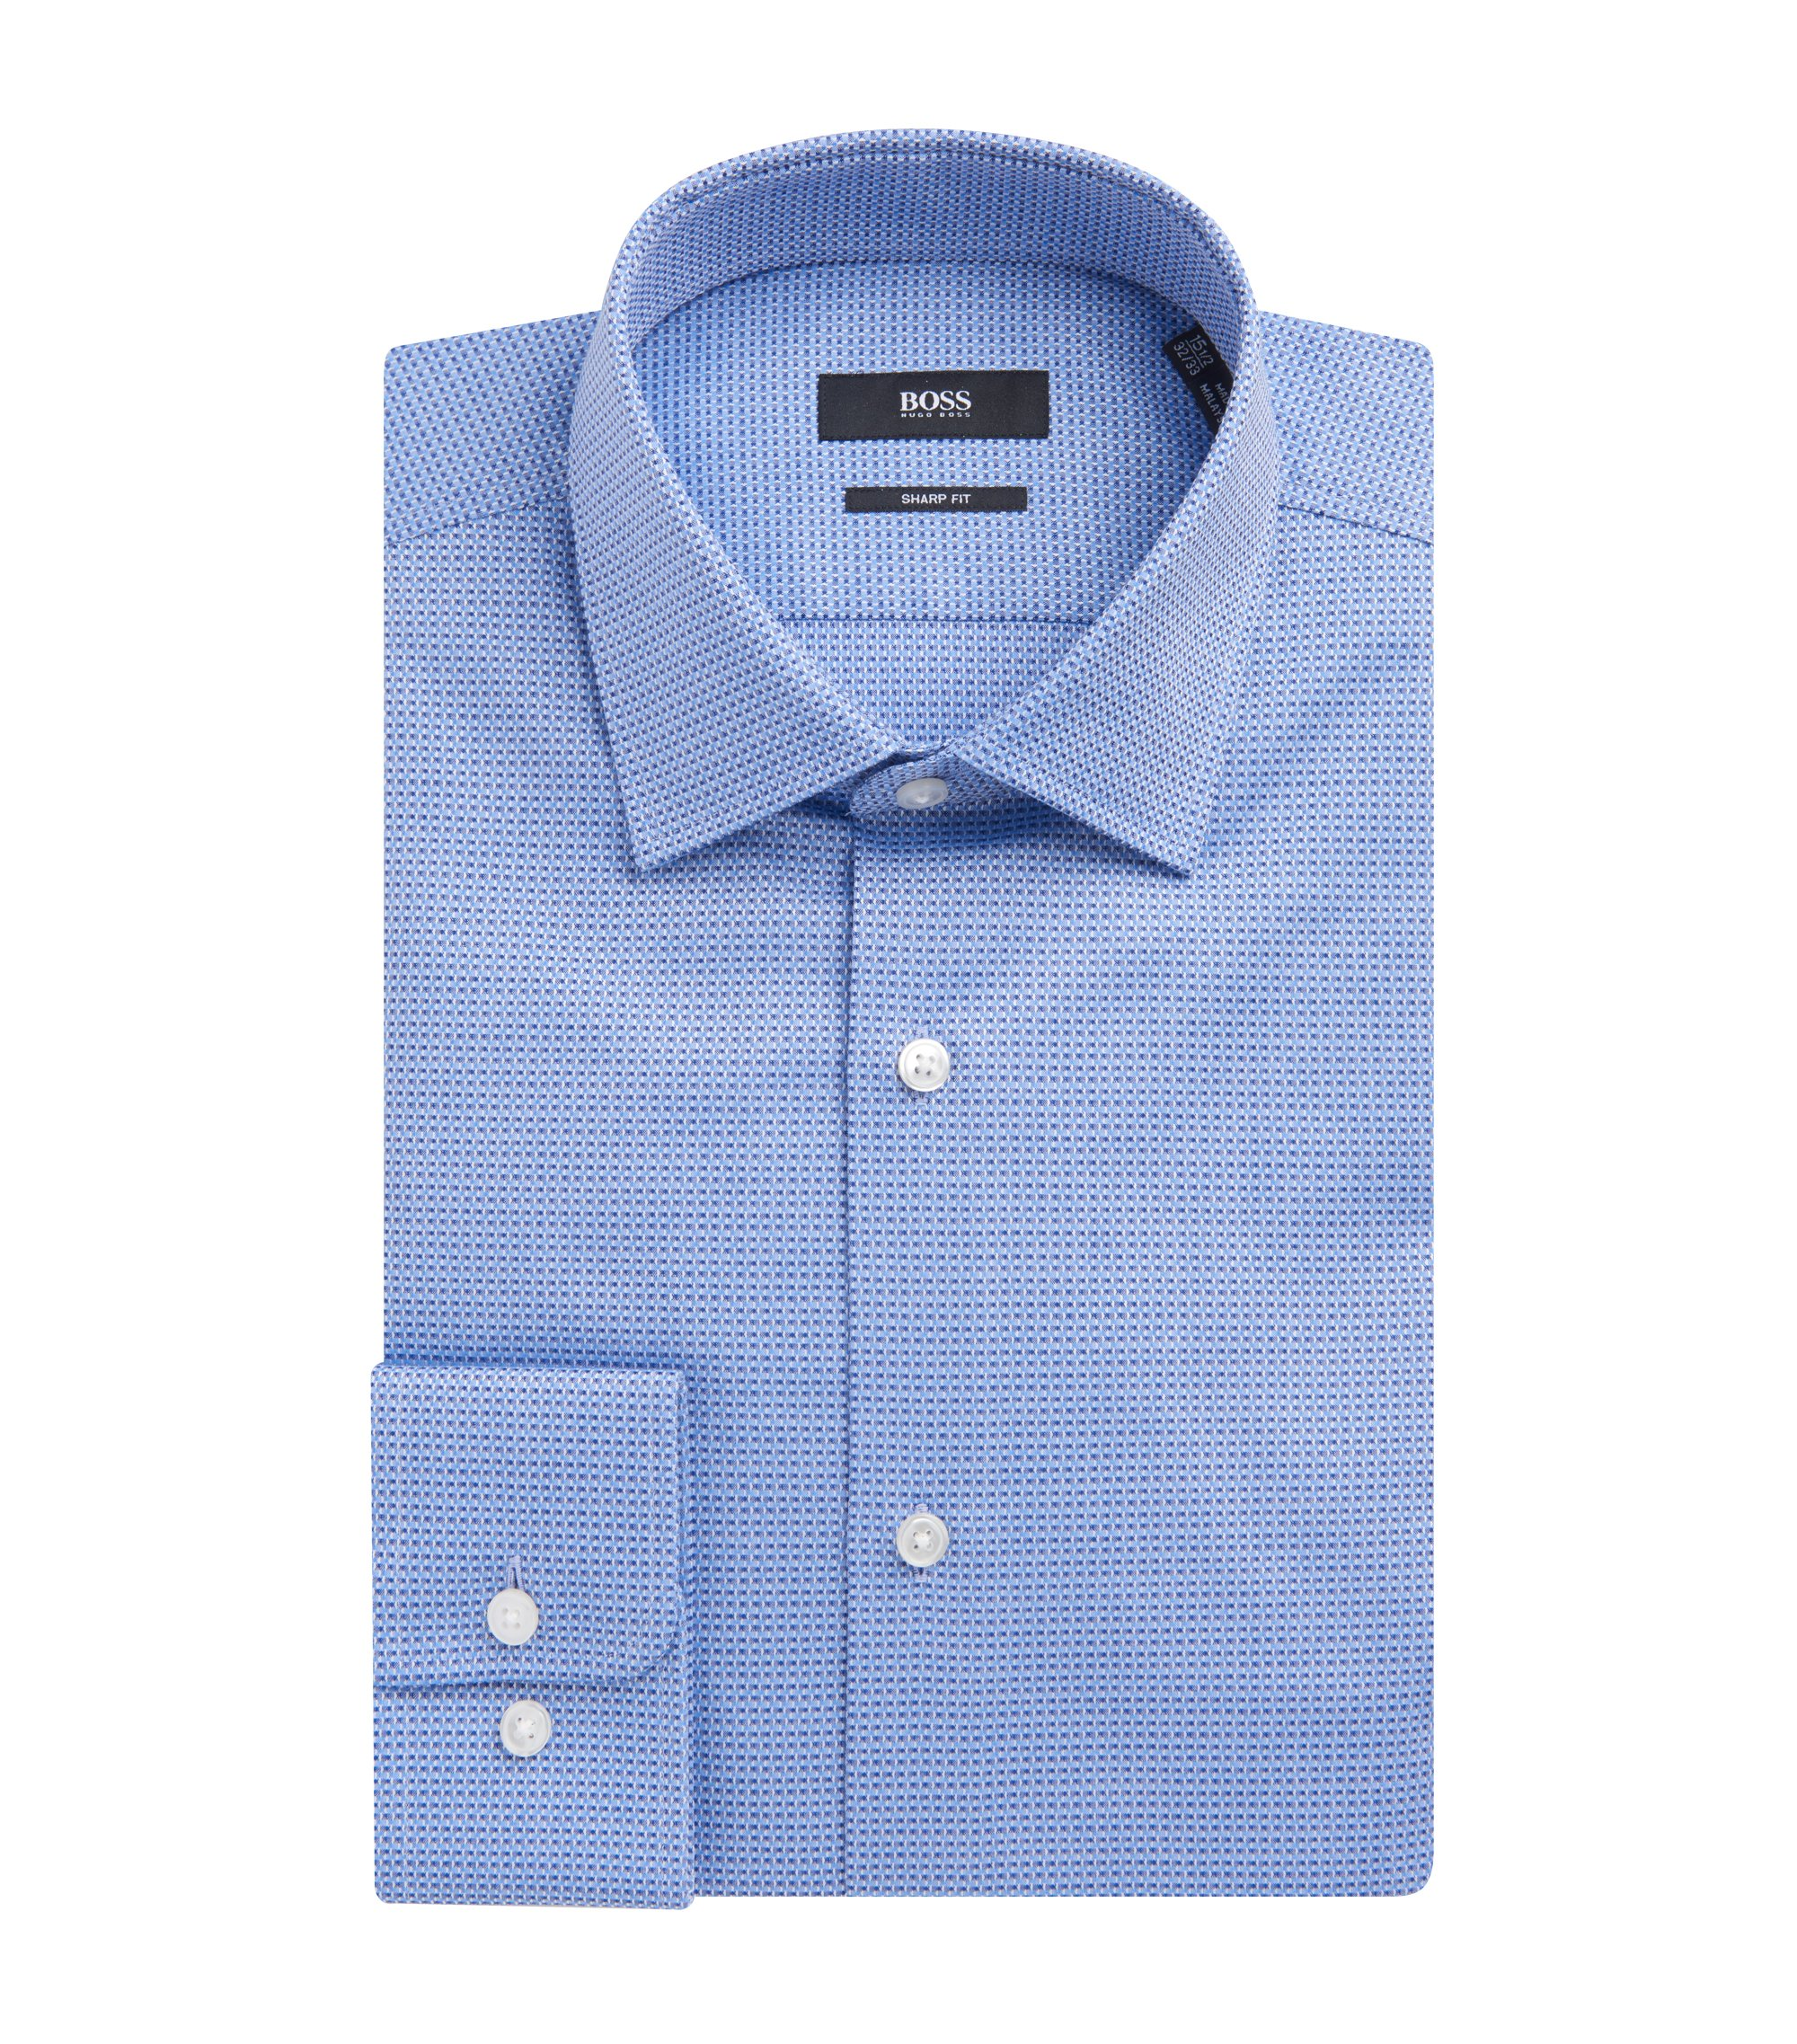 Basketweave Cotton Dress Shirt, Sharp Fit | Marley US, Blue